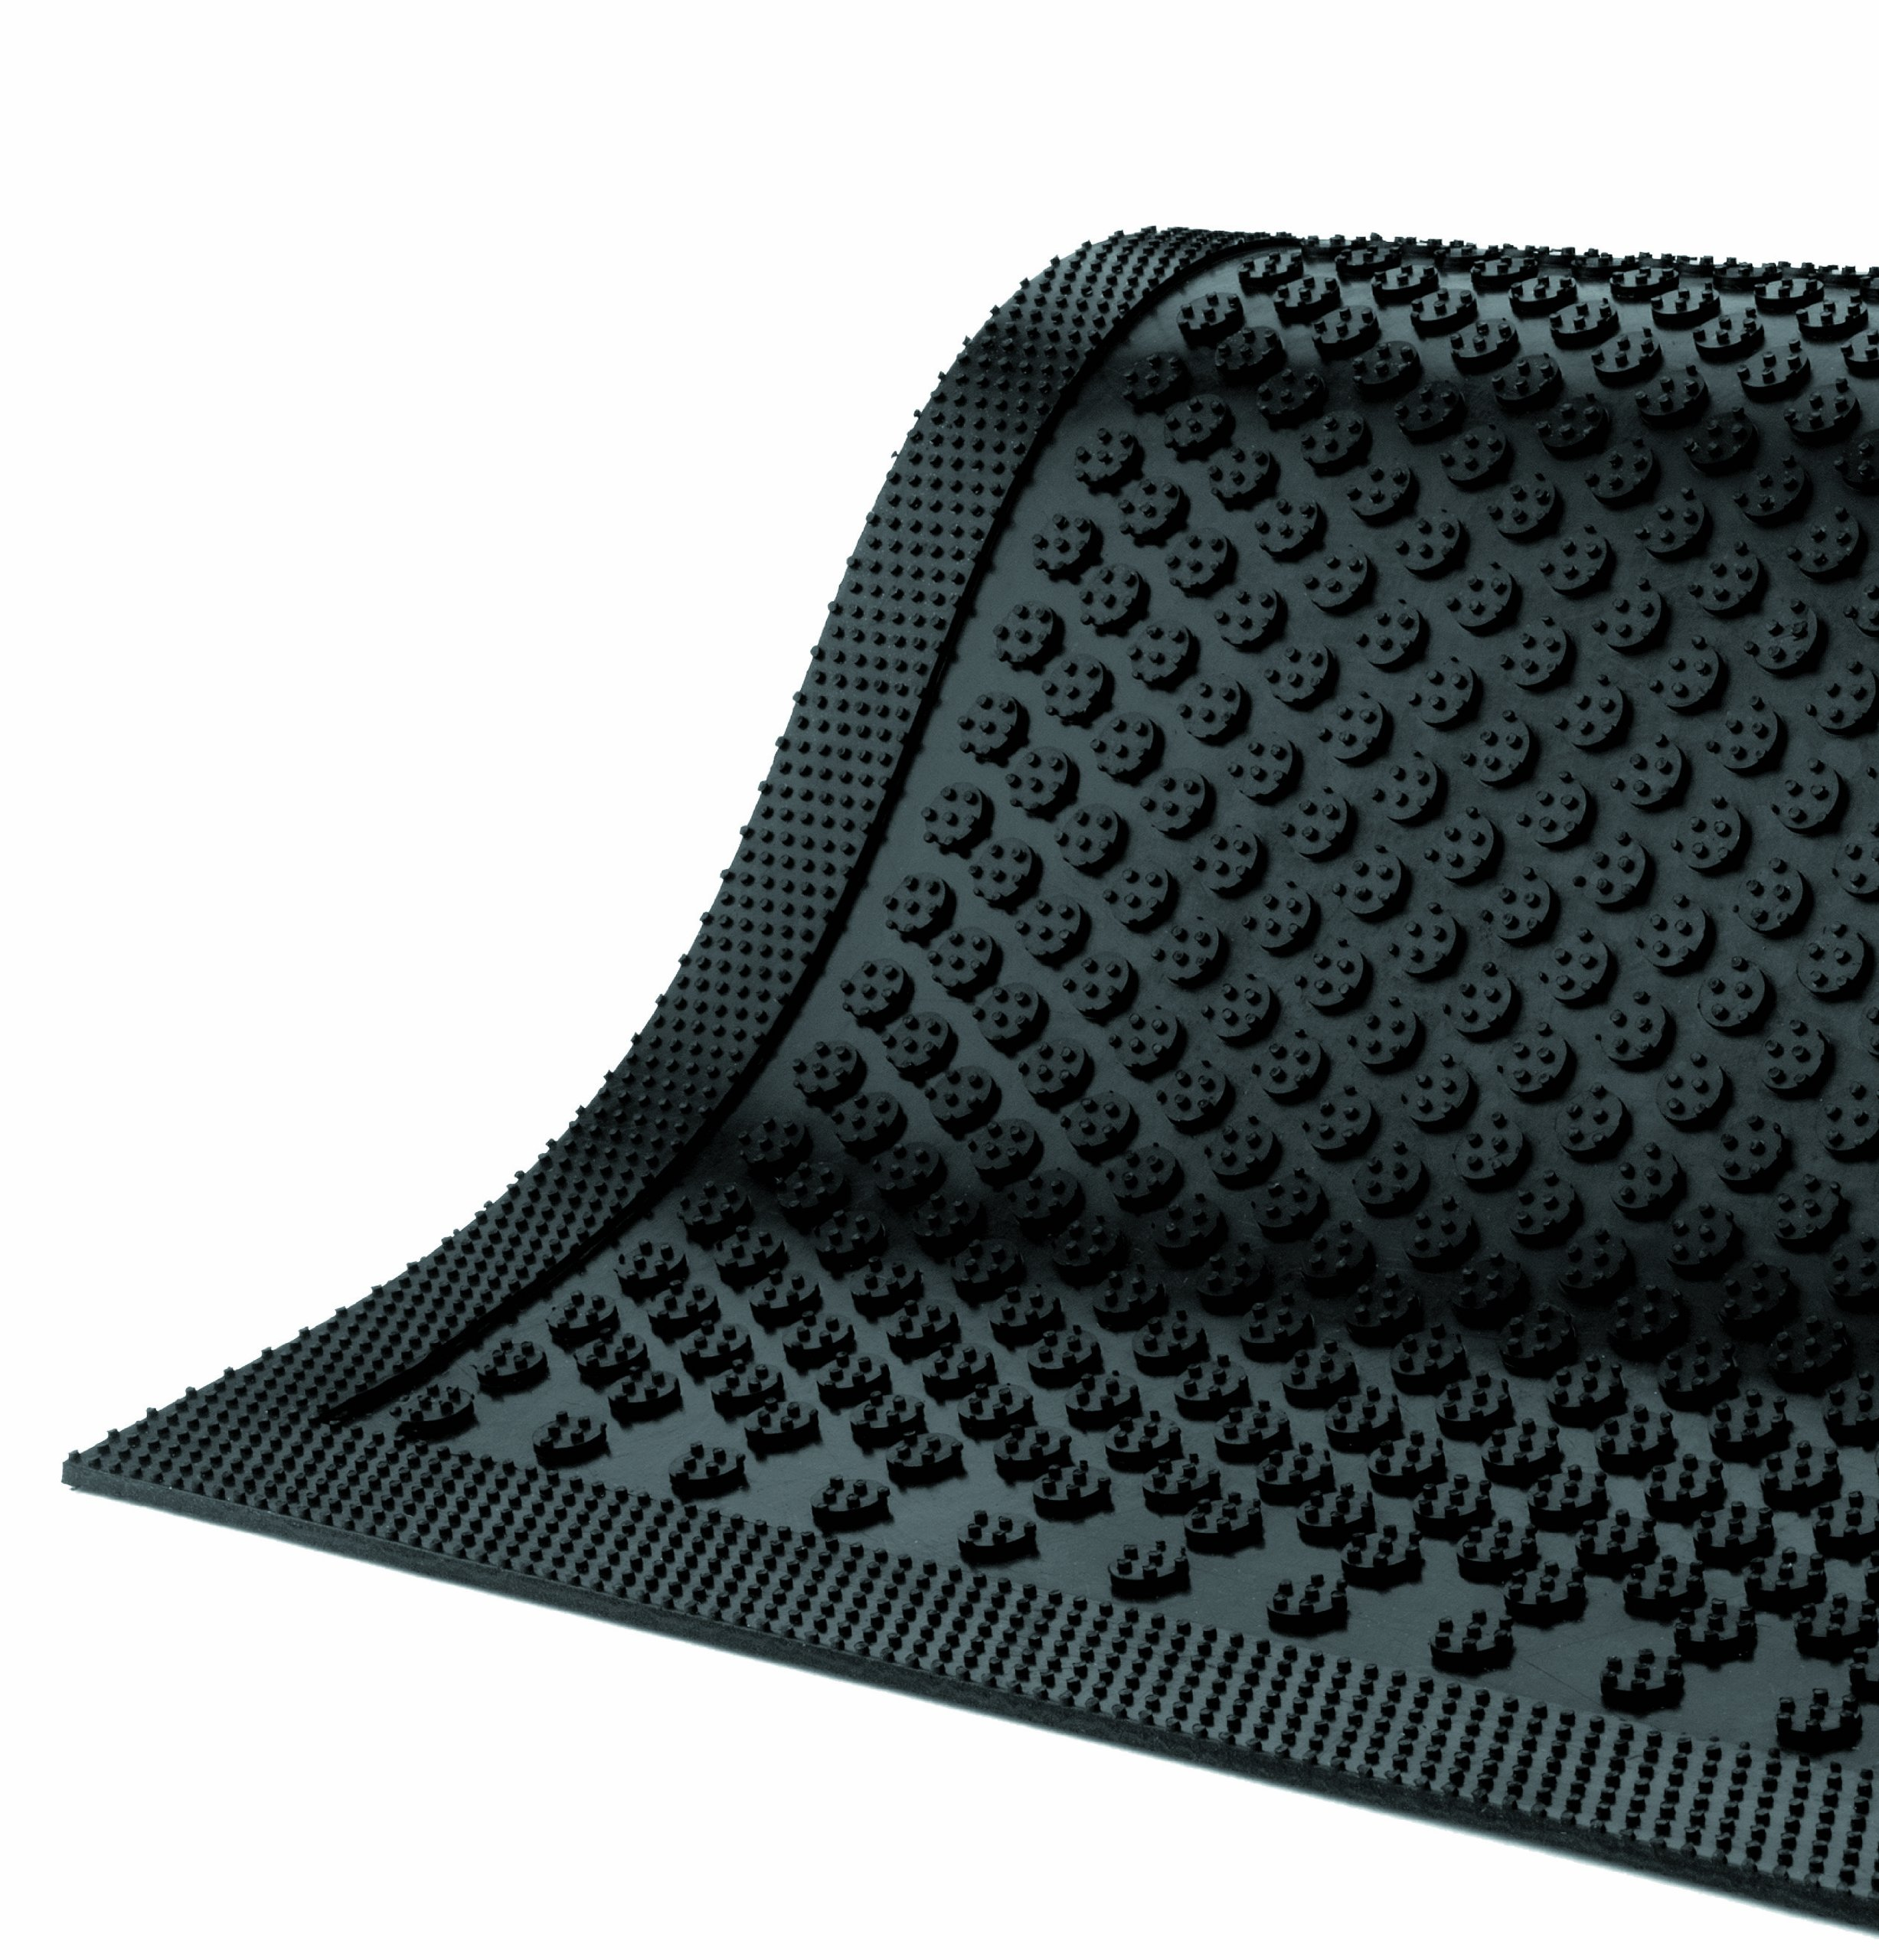 Andersen 545 Safety Scrape Nitrile Rubber Entrance Indoor/Outdoor Floor Mat, 10' Length x 4' Width, 1/8'' Thick, Black